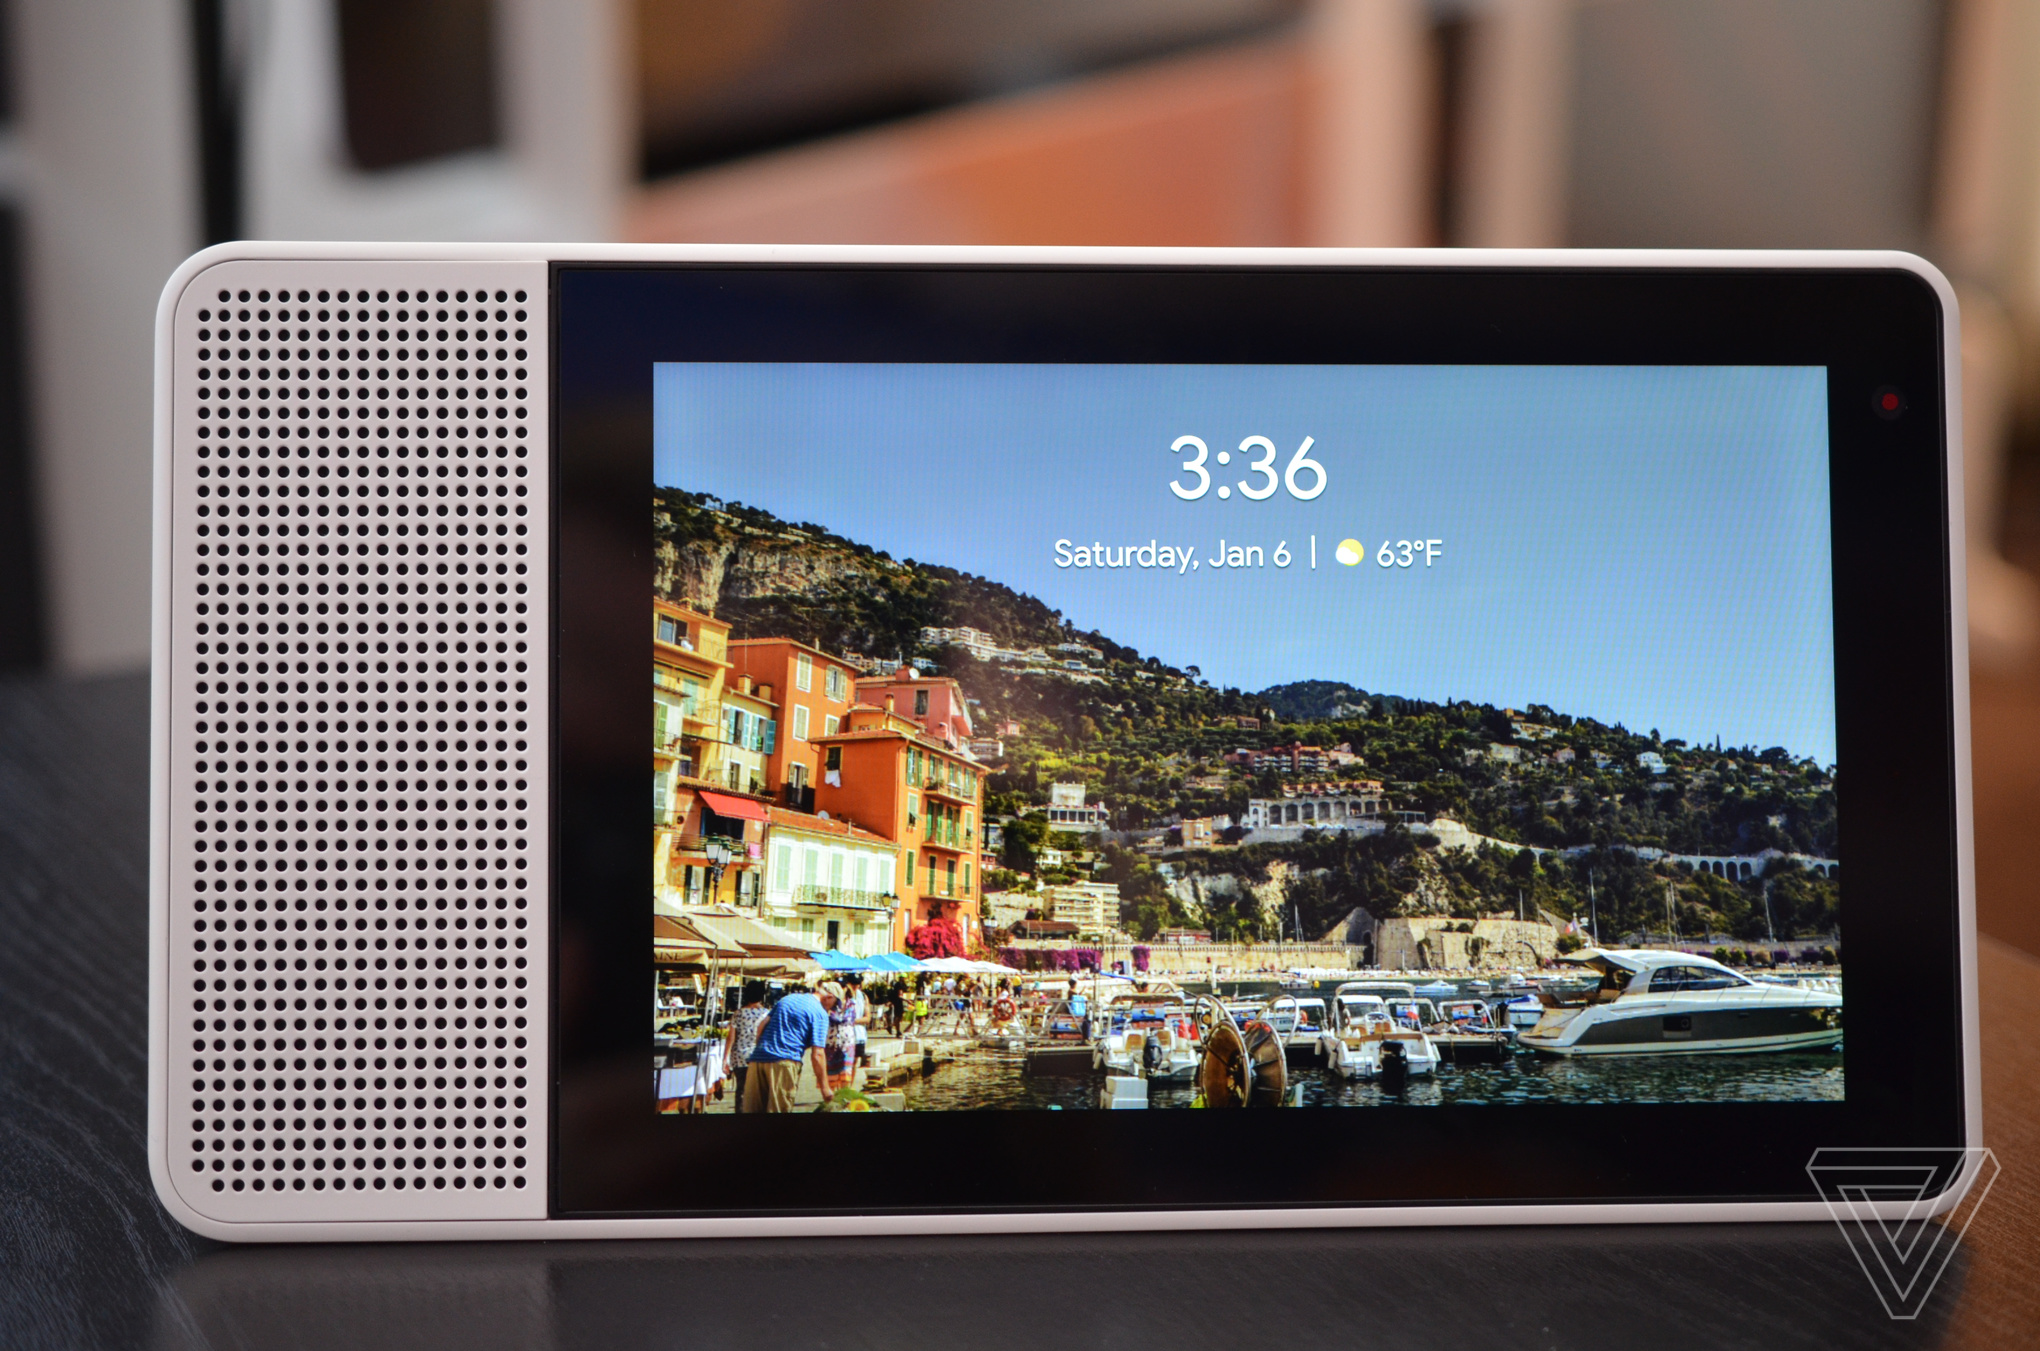 Google says it sold over 6 million Home speakers since mid-October